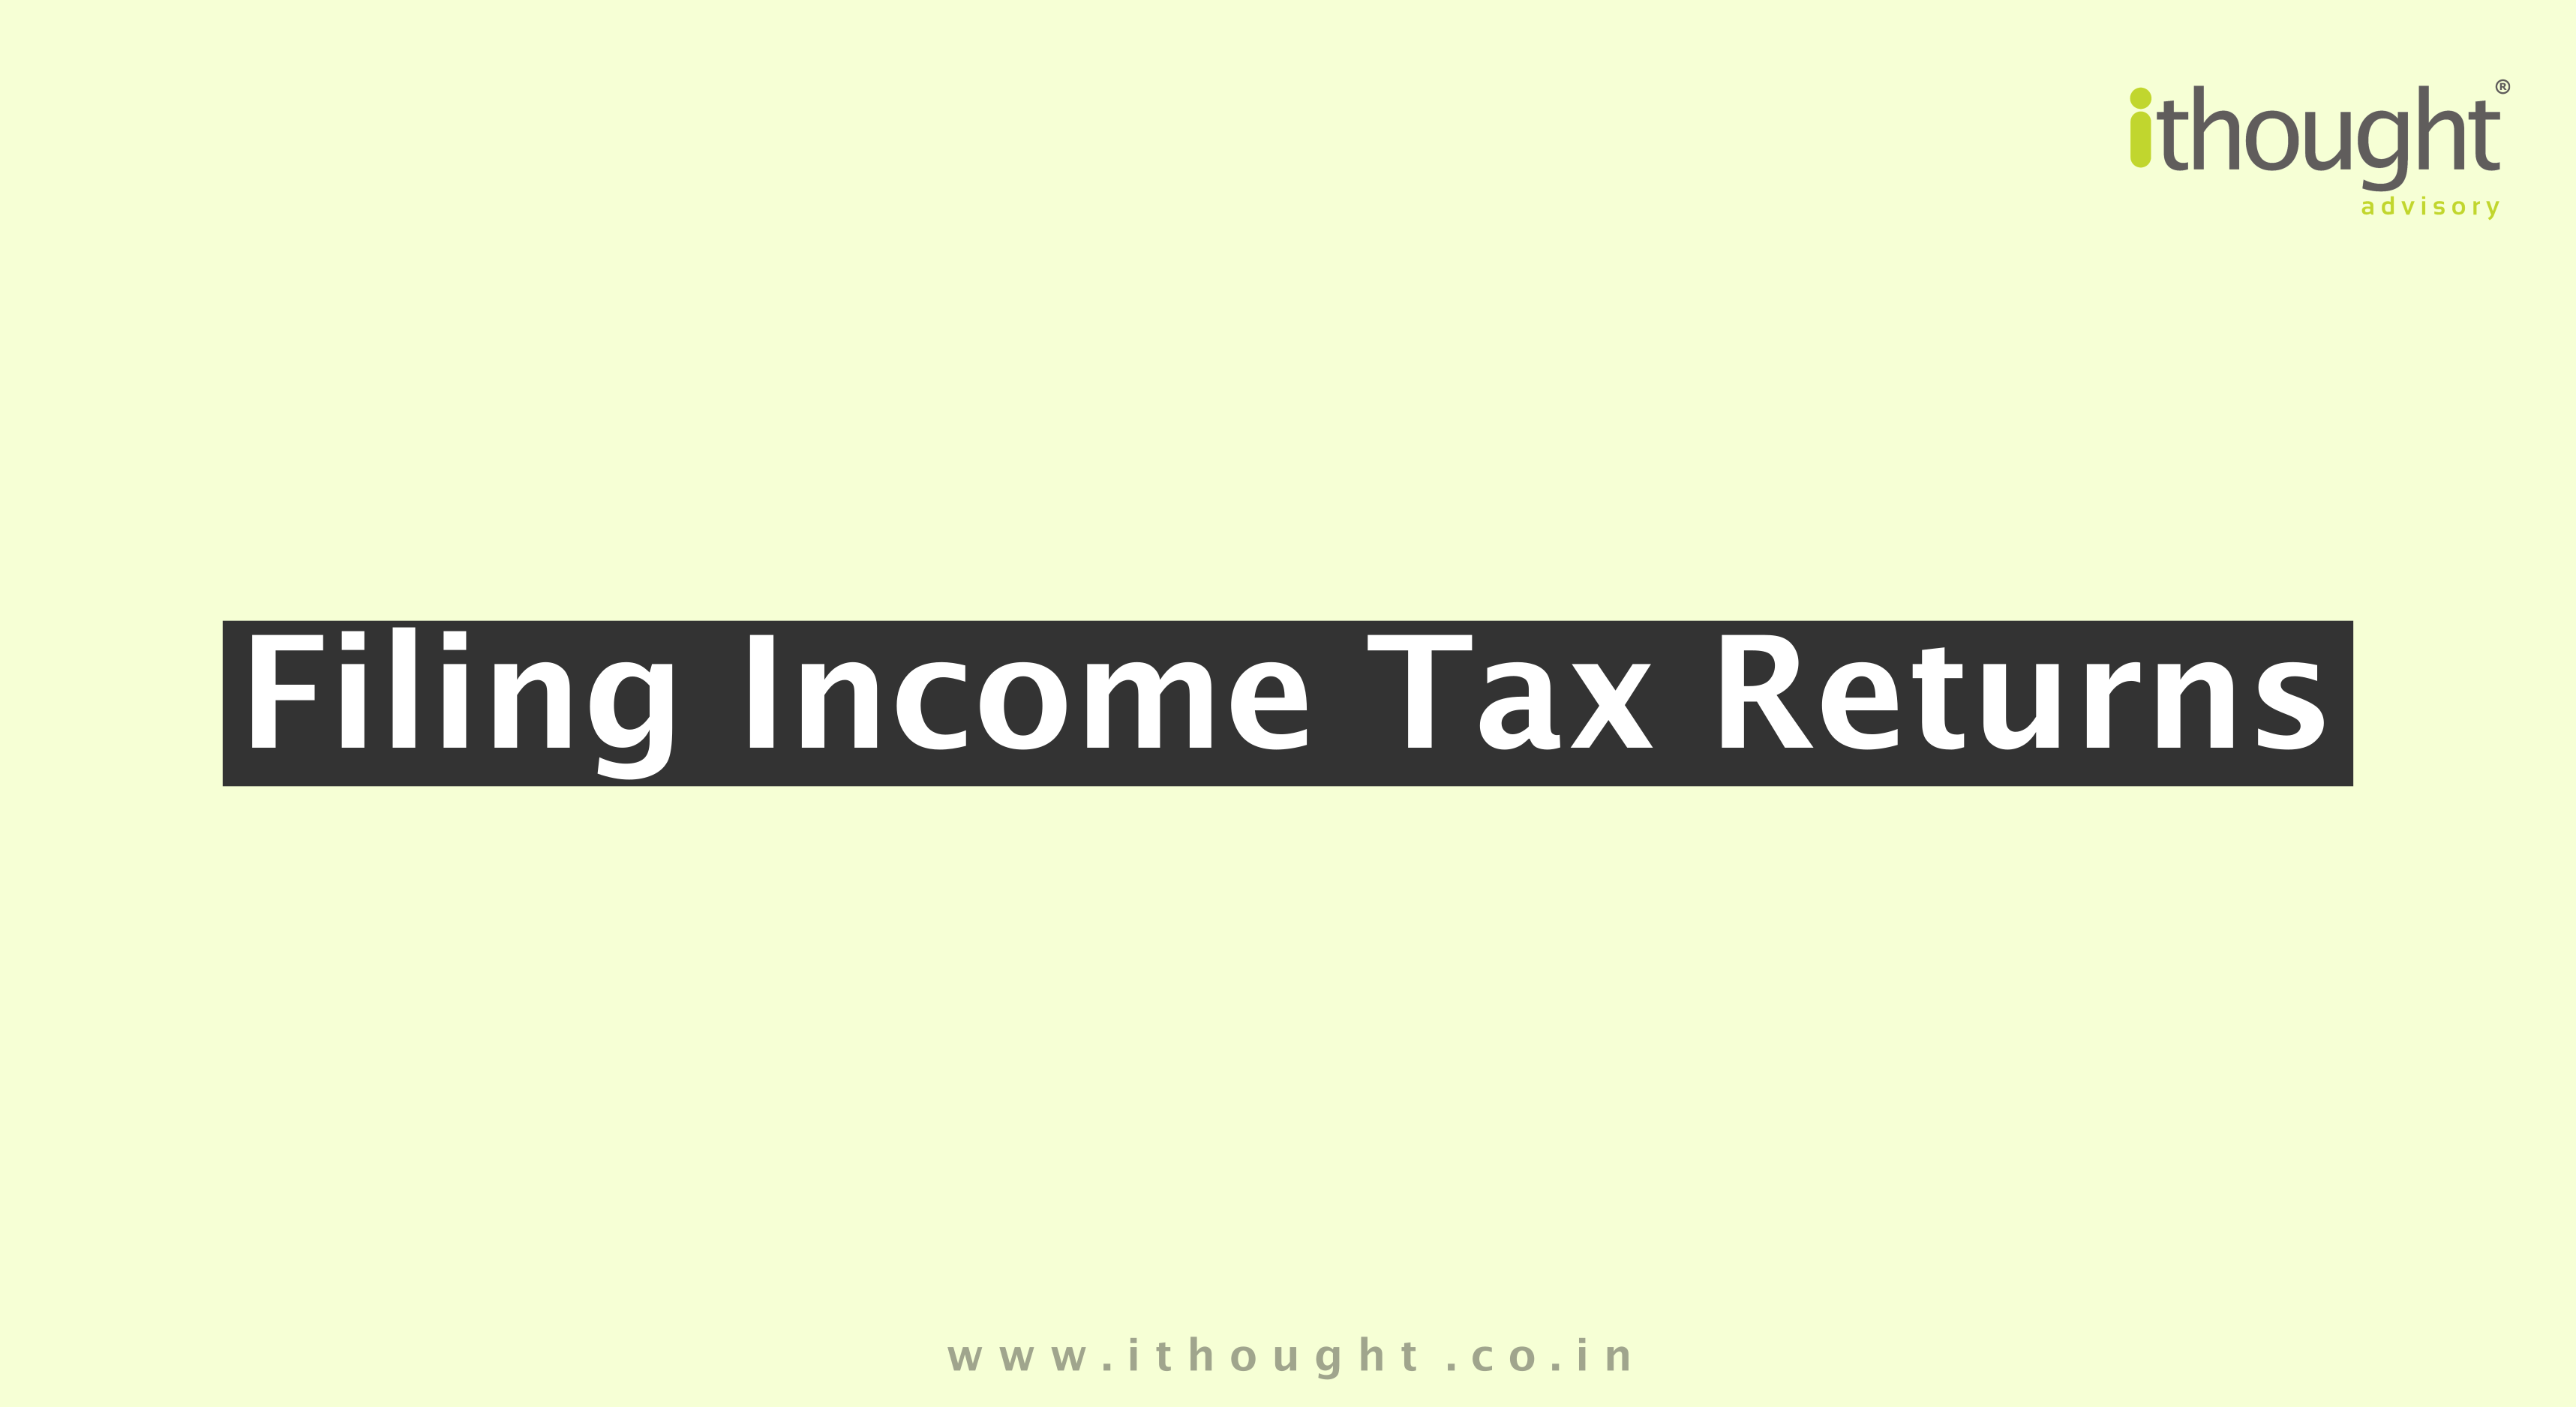 Filing-income-tax-returns